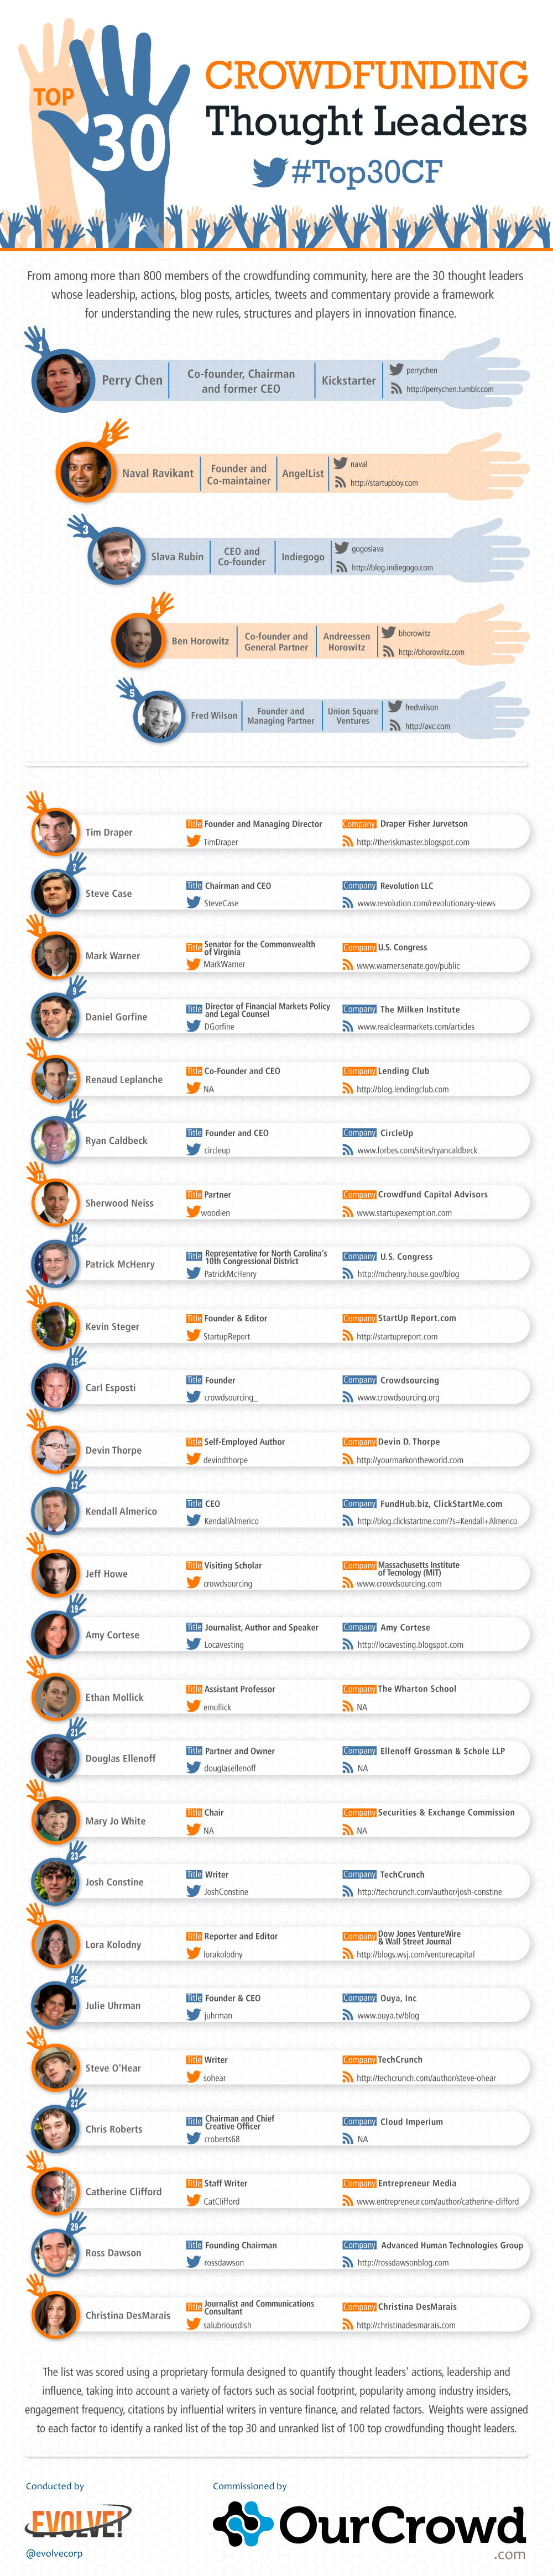 Top 30 crowdfunding thought leaders